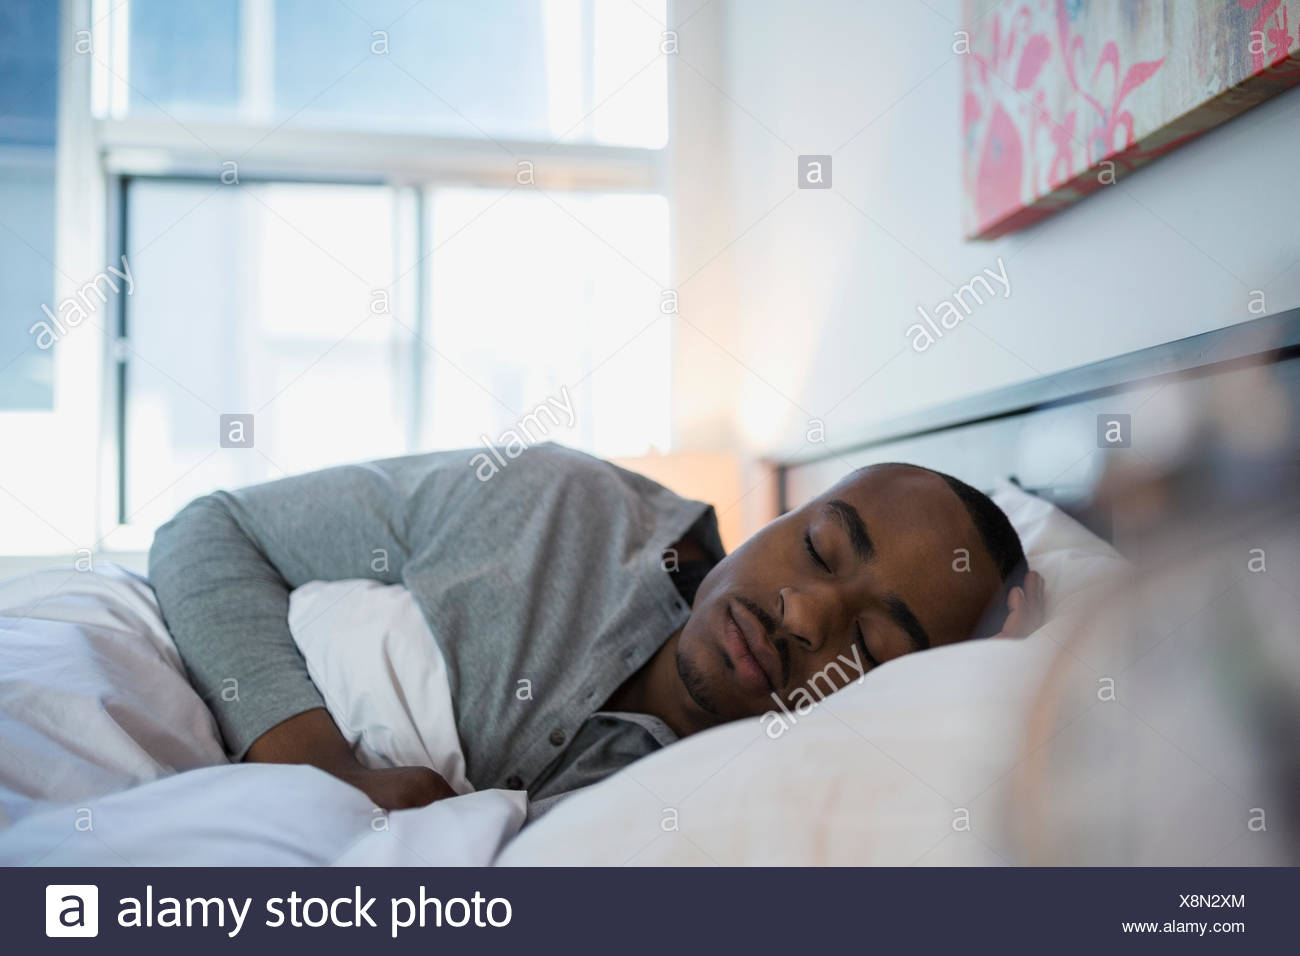 Serene man sleeping in bed in the morning - Stock Image